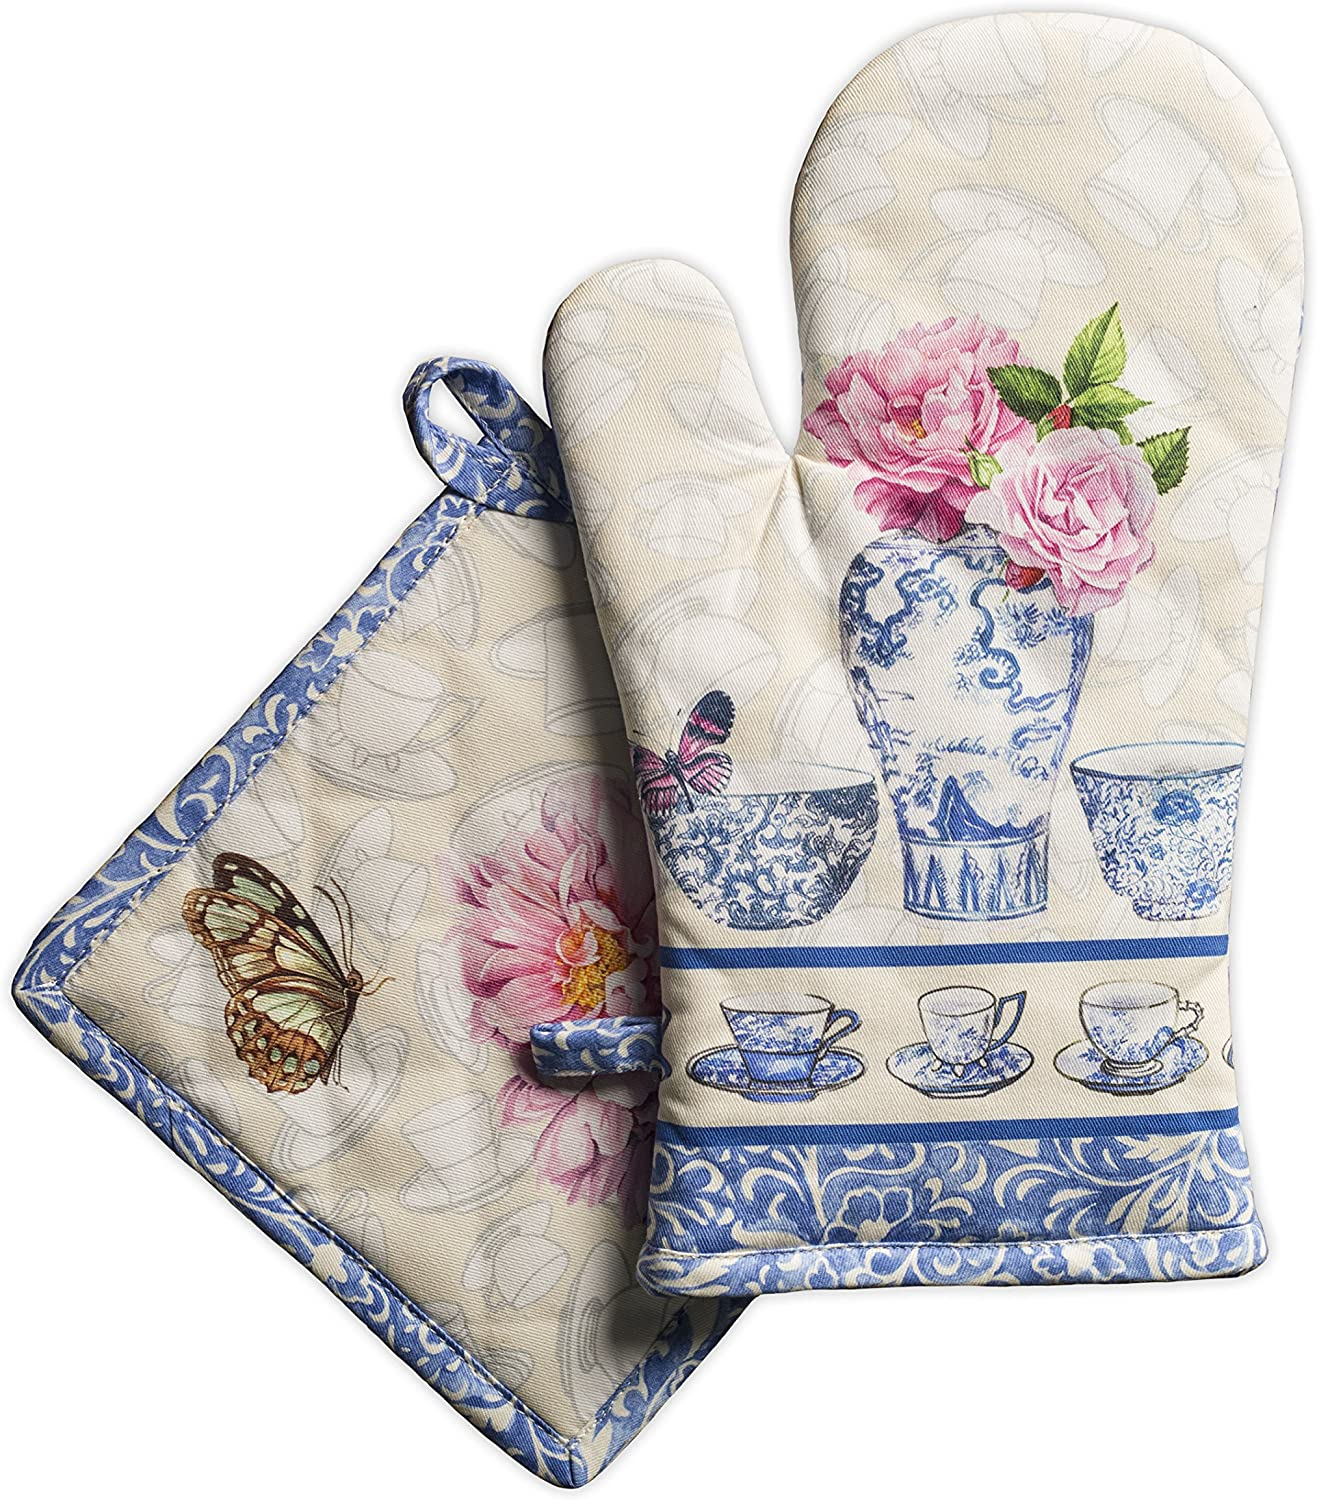 Maison d' Hermine Canton 100% Cotton Set of Oven Mitt (7.5 Inch by 13 Inch) and Pot Holder (8 Inch by 8 Inch)